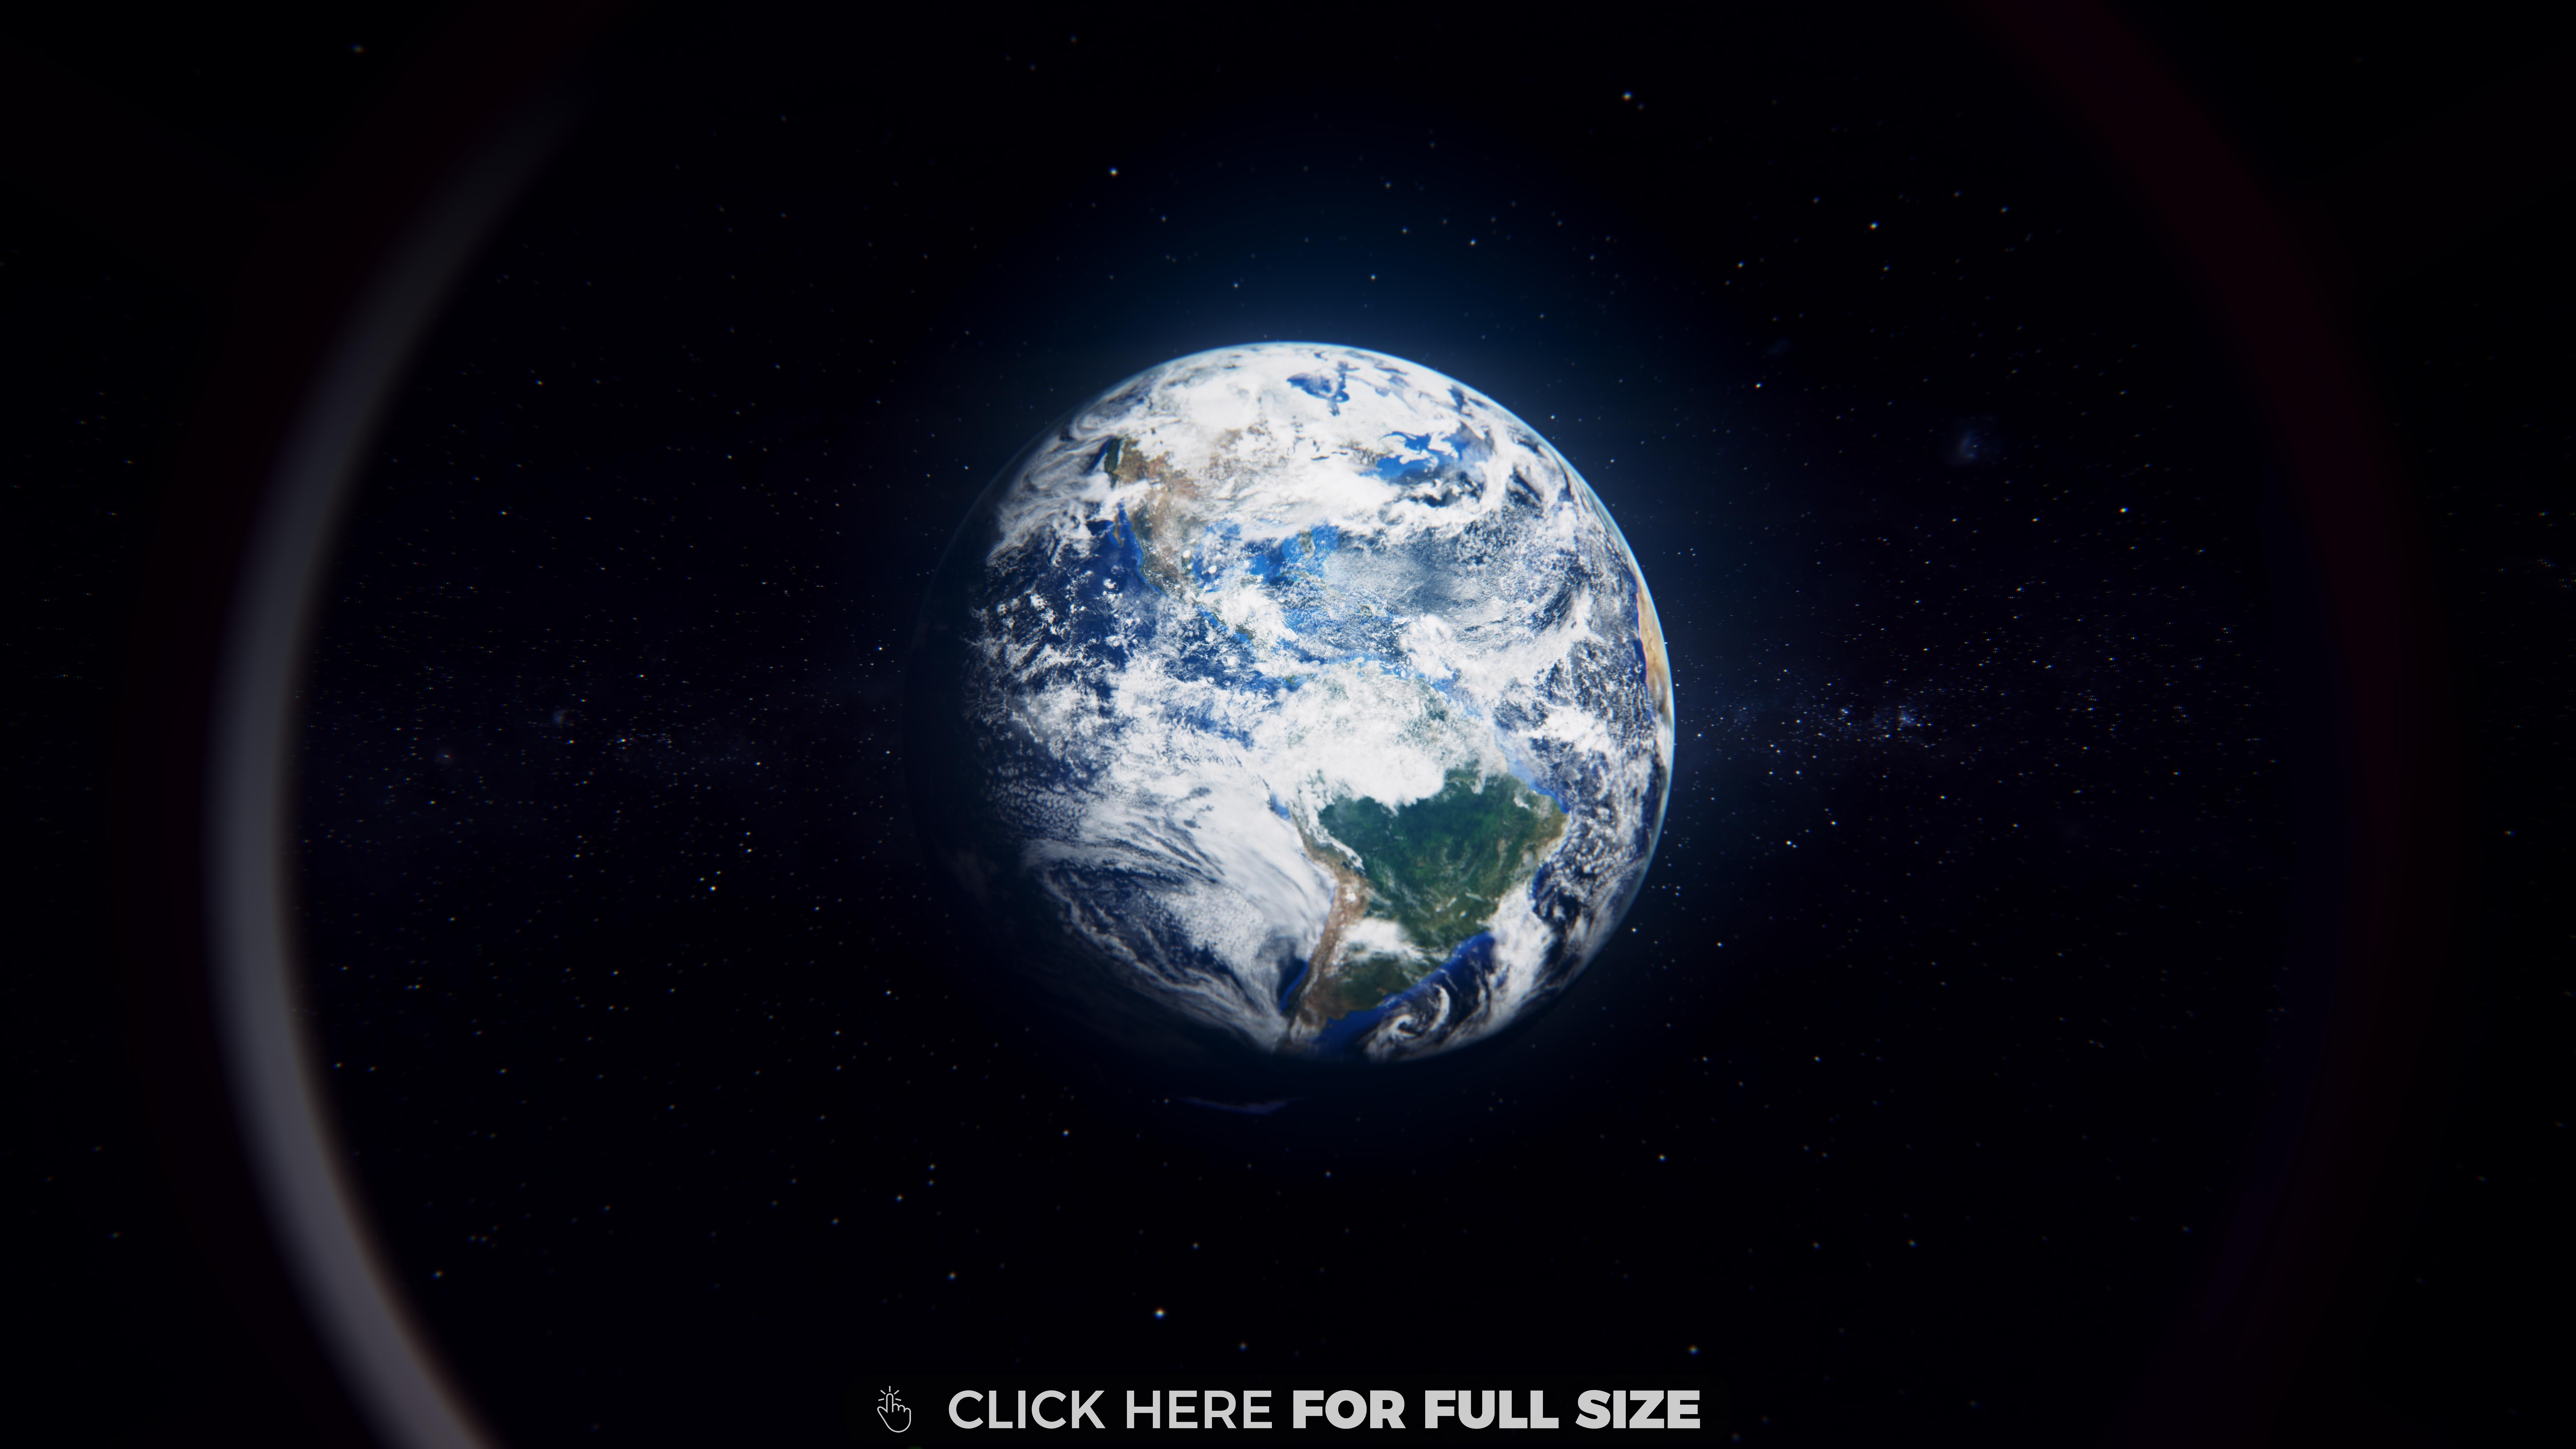 Earth From Space 4k Wallpaper Earth View From Space Wallpaper Earth Earth View